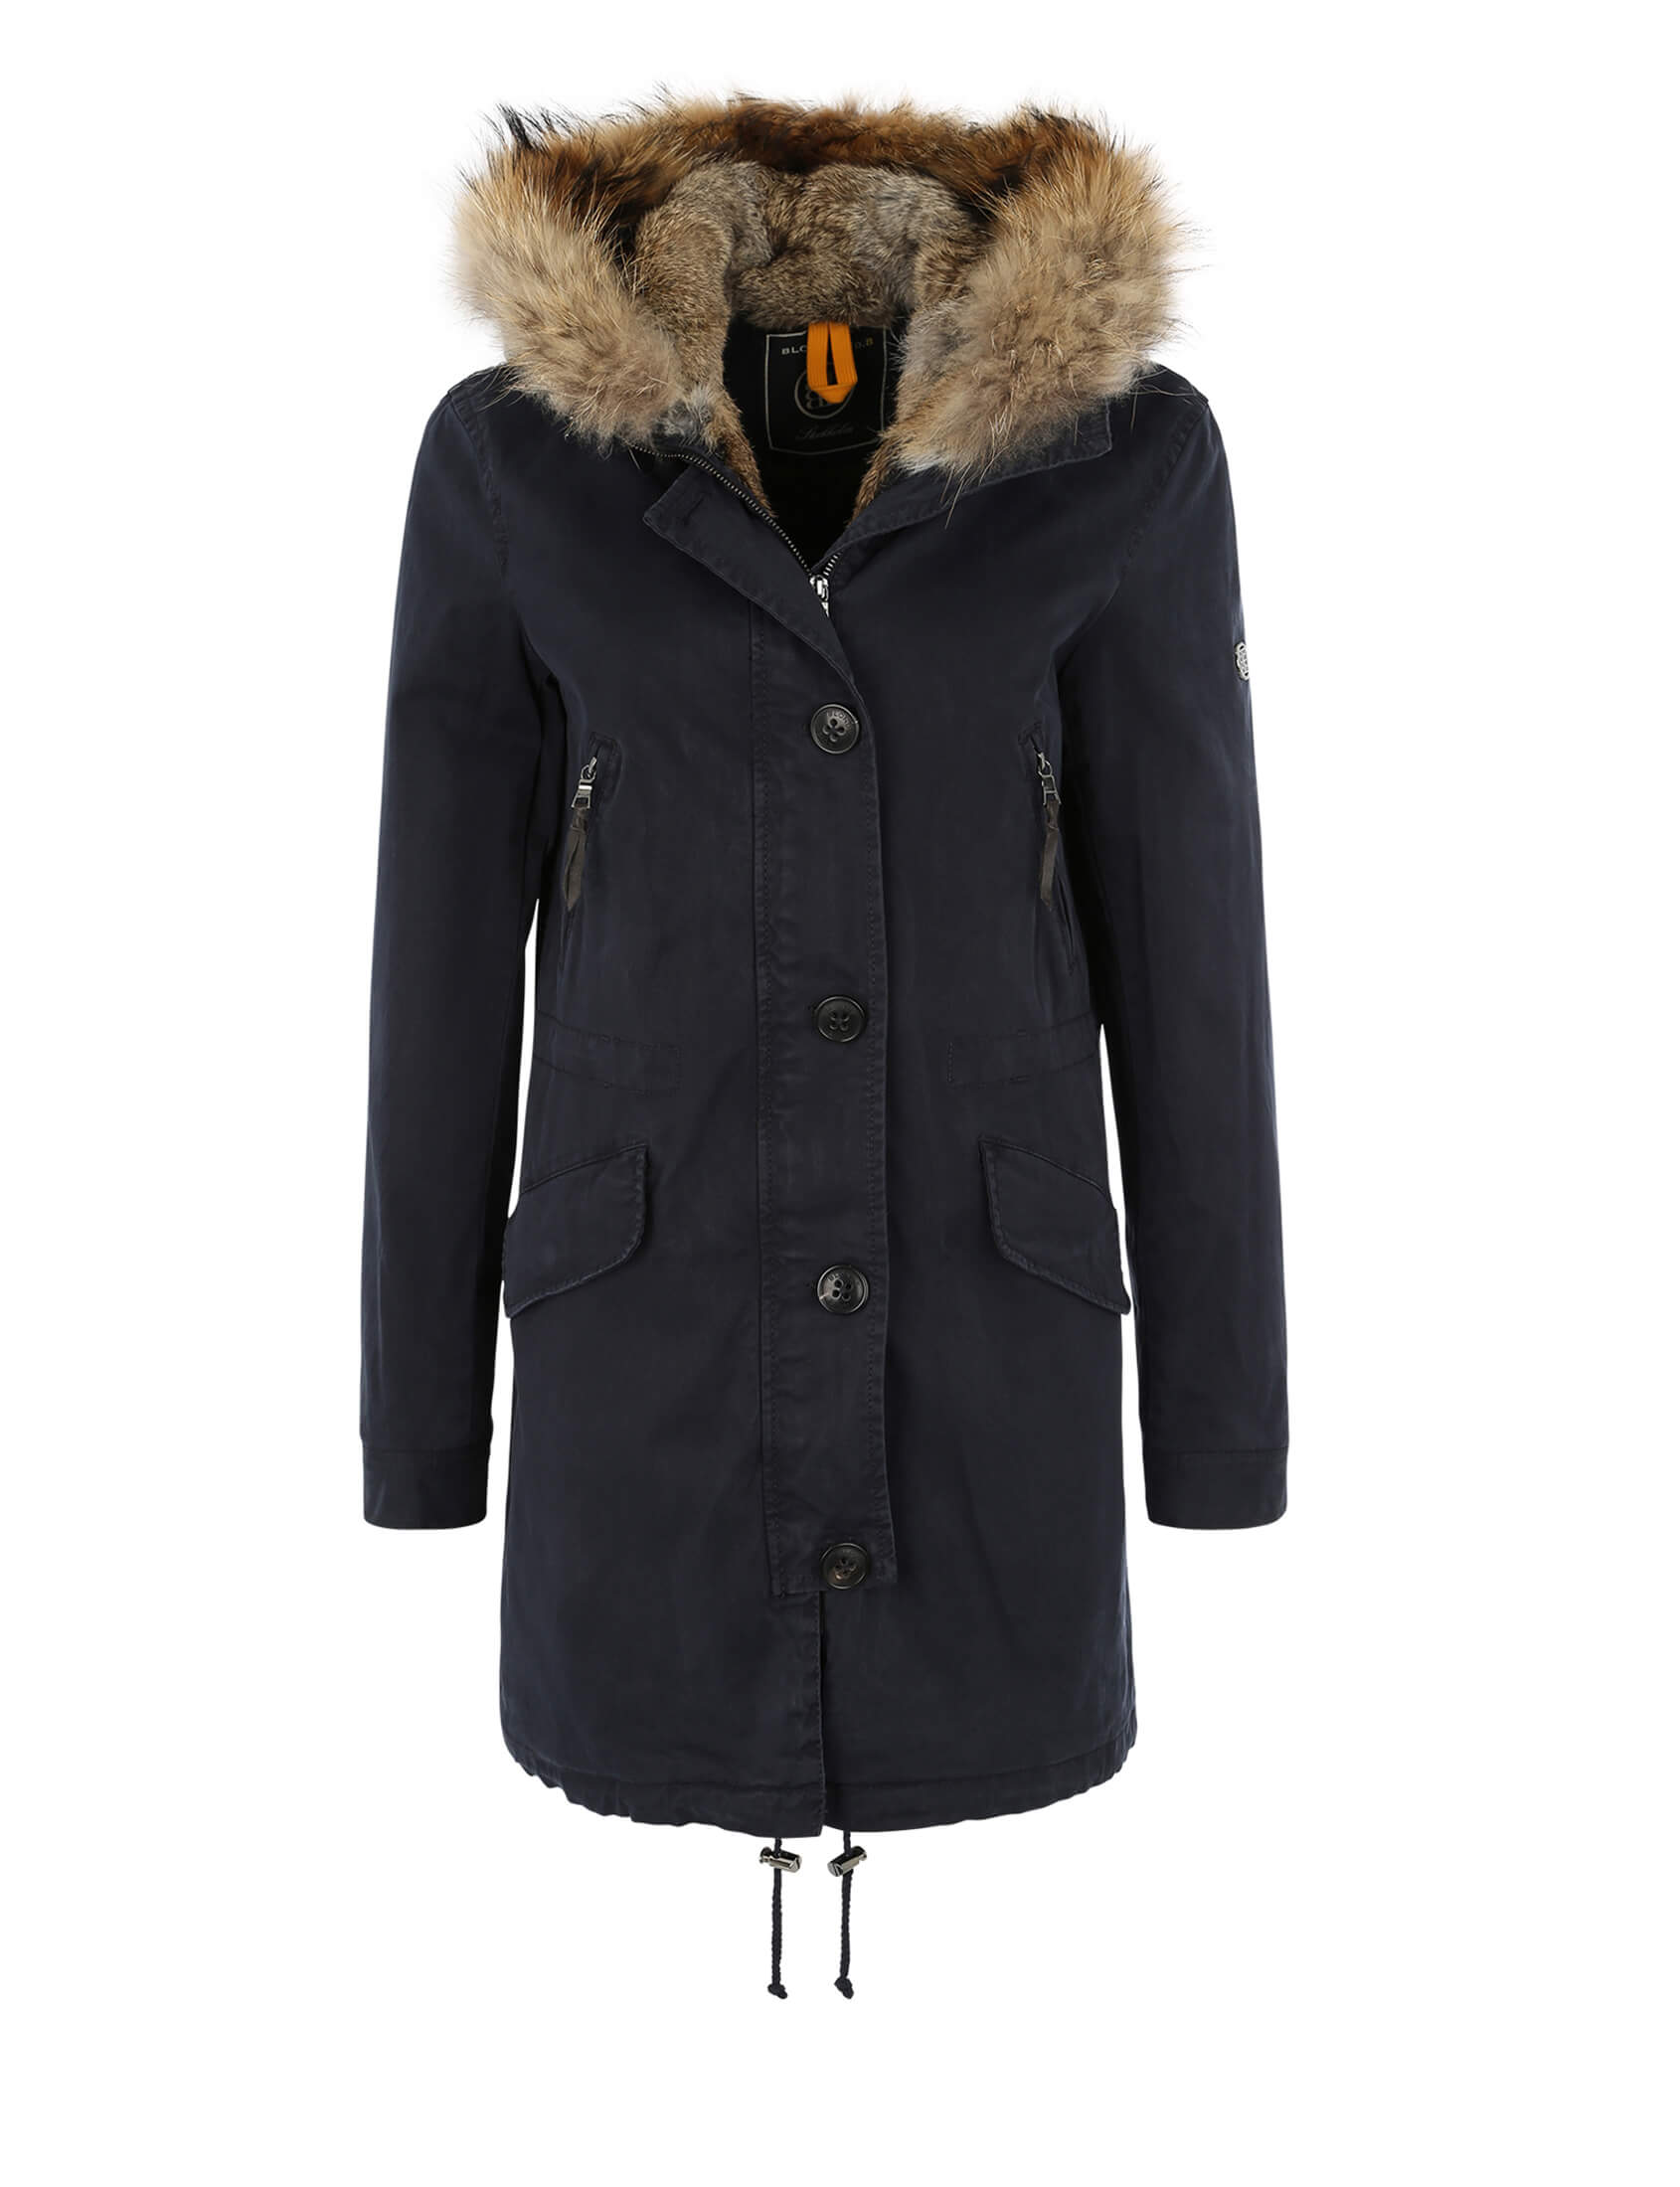 blonde no 8 damen echtfell parka aspen 515 navy parka. Black Bedroom Furniture Sets. Home Design Ideas